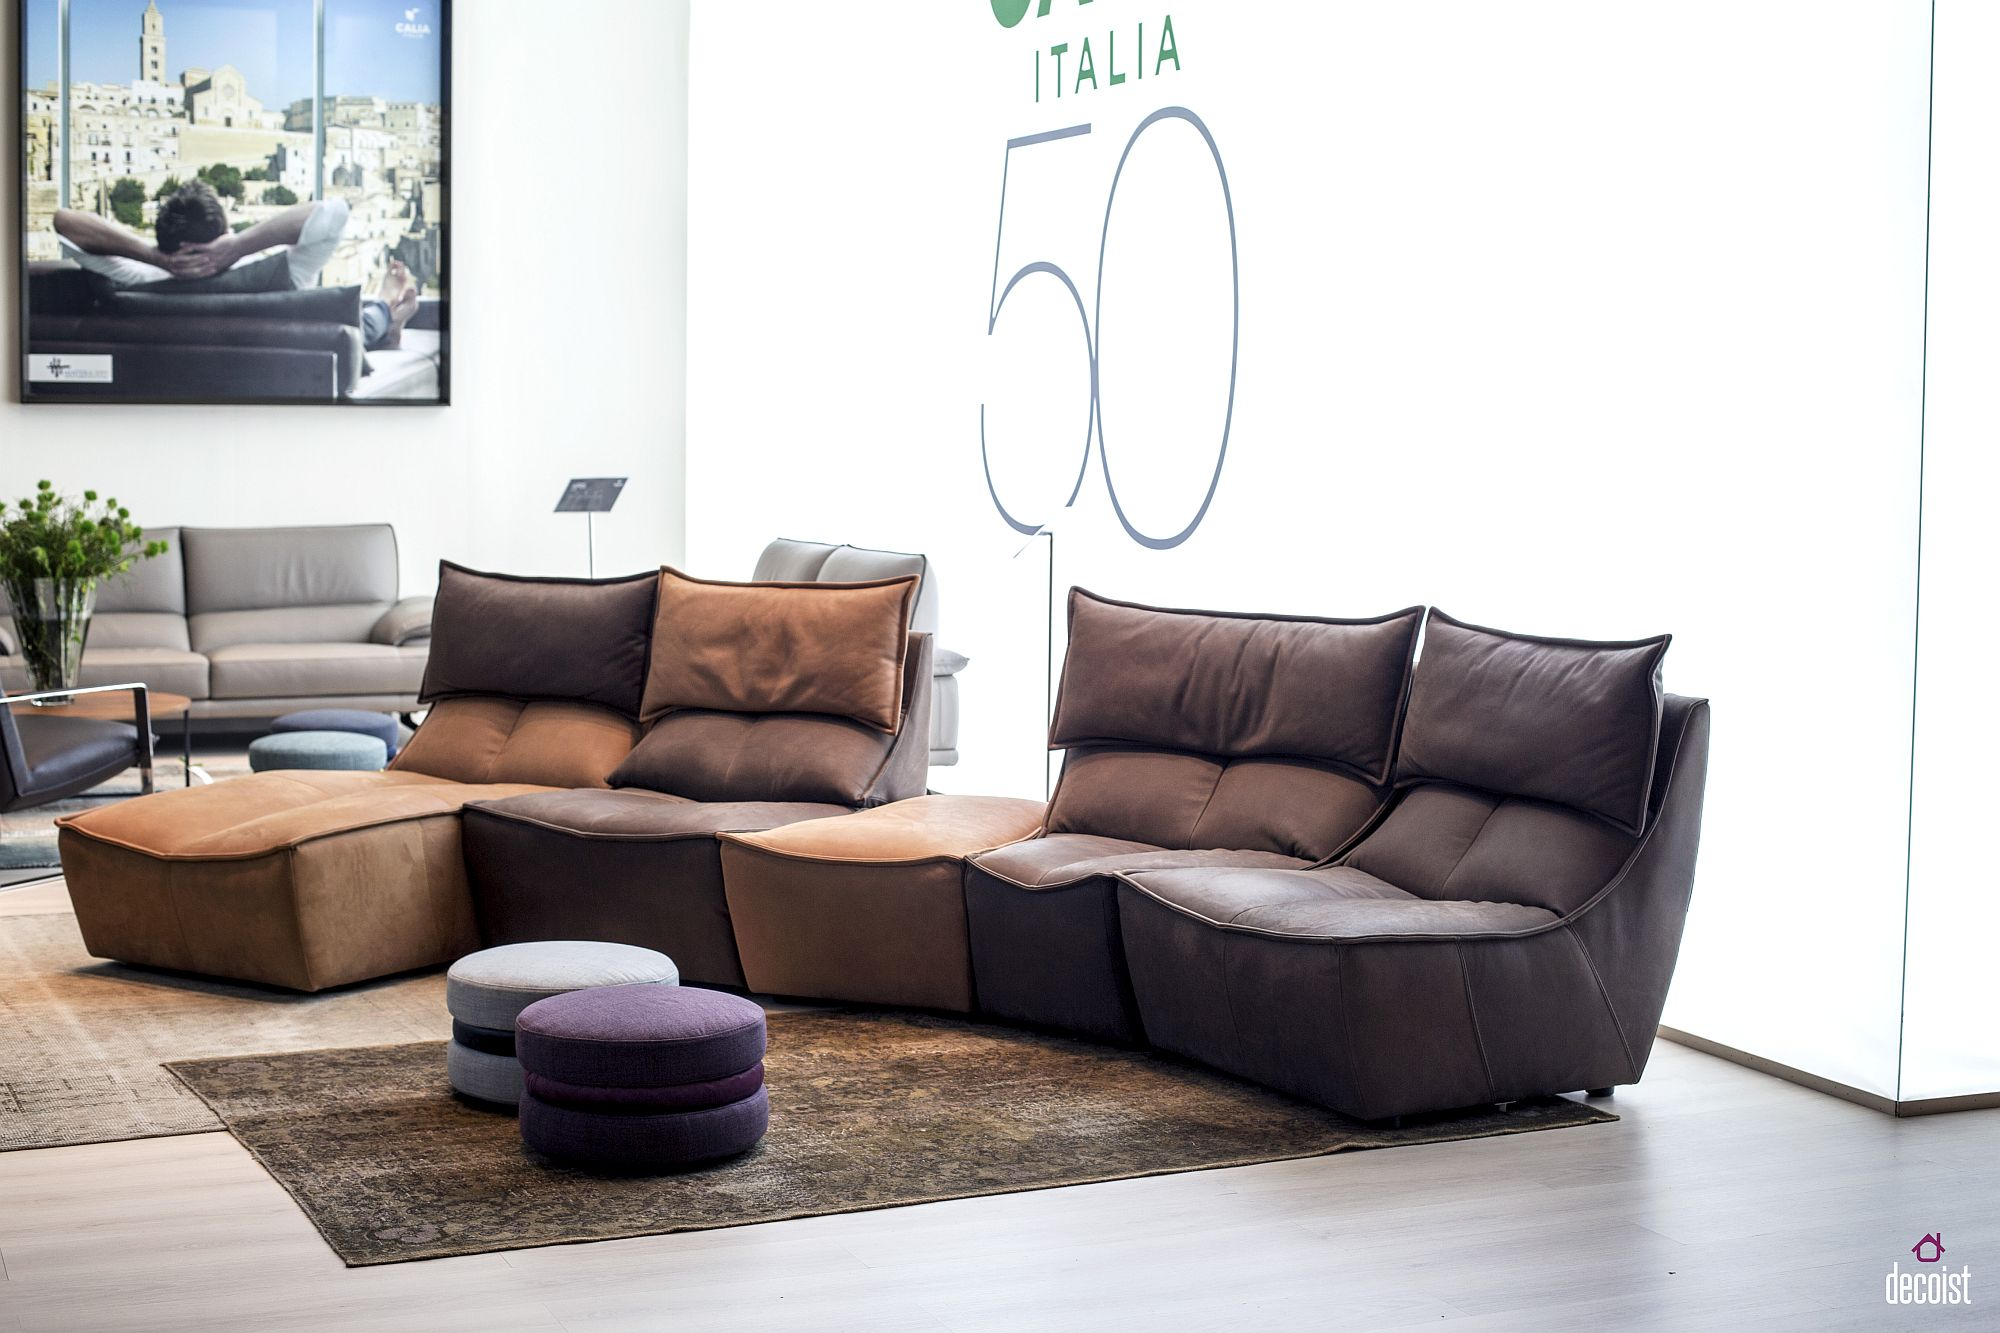 Modular-sofa-units-from-Calia-Italia-add-color-contrast-and-design-comfort